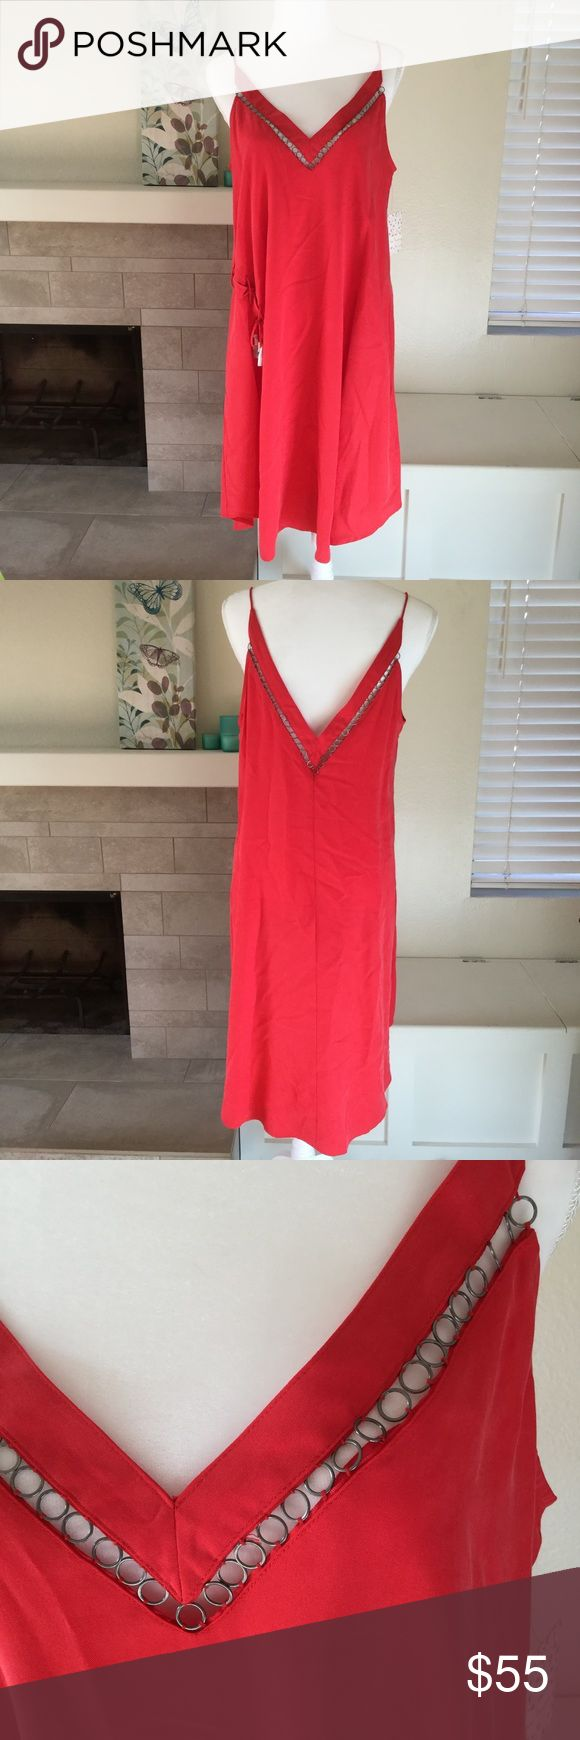 """🆕 NWT Free People All I Want dress From festival to date night, this dress has you covered.  🐾 Red with grommets accents along neckline (front and back) 🐾 Side slit (right side) 🐾 Lace up side (ends still wrapped in tissue) 🐾 Spaghetti strap 🐾 V-neck front and back 🐾 Pullover style (no zippers) 🐾 Bust: 20"""" 🐾 Length: 42"""" 🐾 100% tencel 🐾 Machine wash, tumble dry 🐾 NWT  🐾 Bundle discount 🐾 No trades, no PP 🐾 Smoke free, pet friendly home Free People Dresses Midi"""